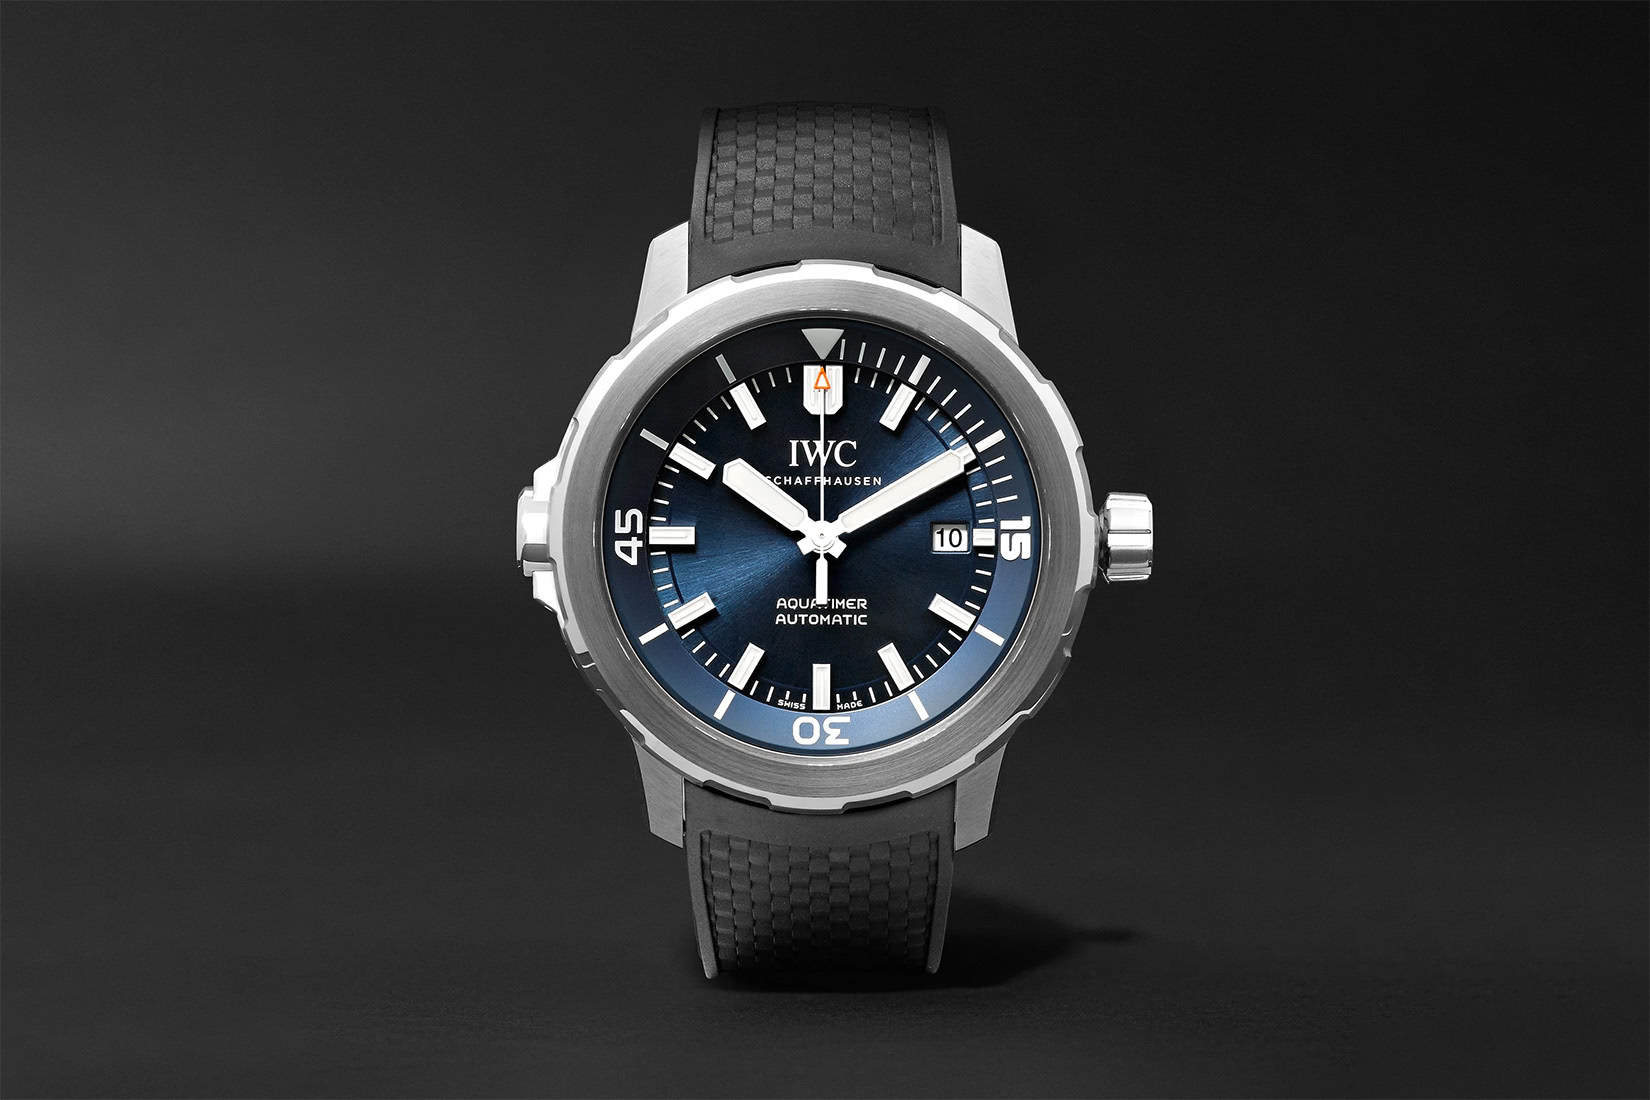 best dive watch IWC aquatimer expedition - Luxe Digital